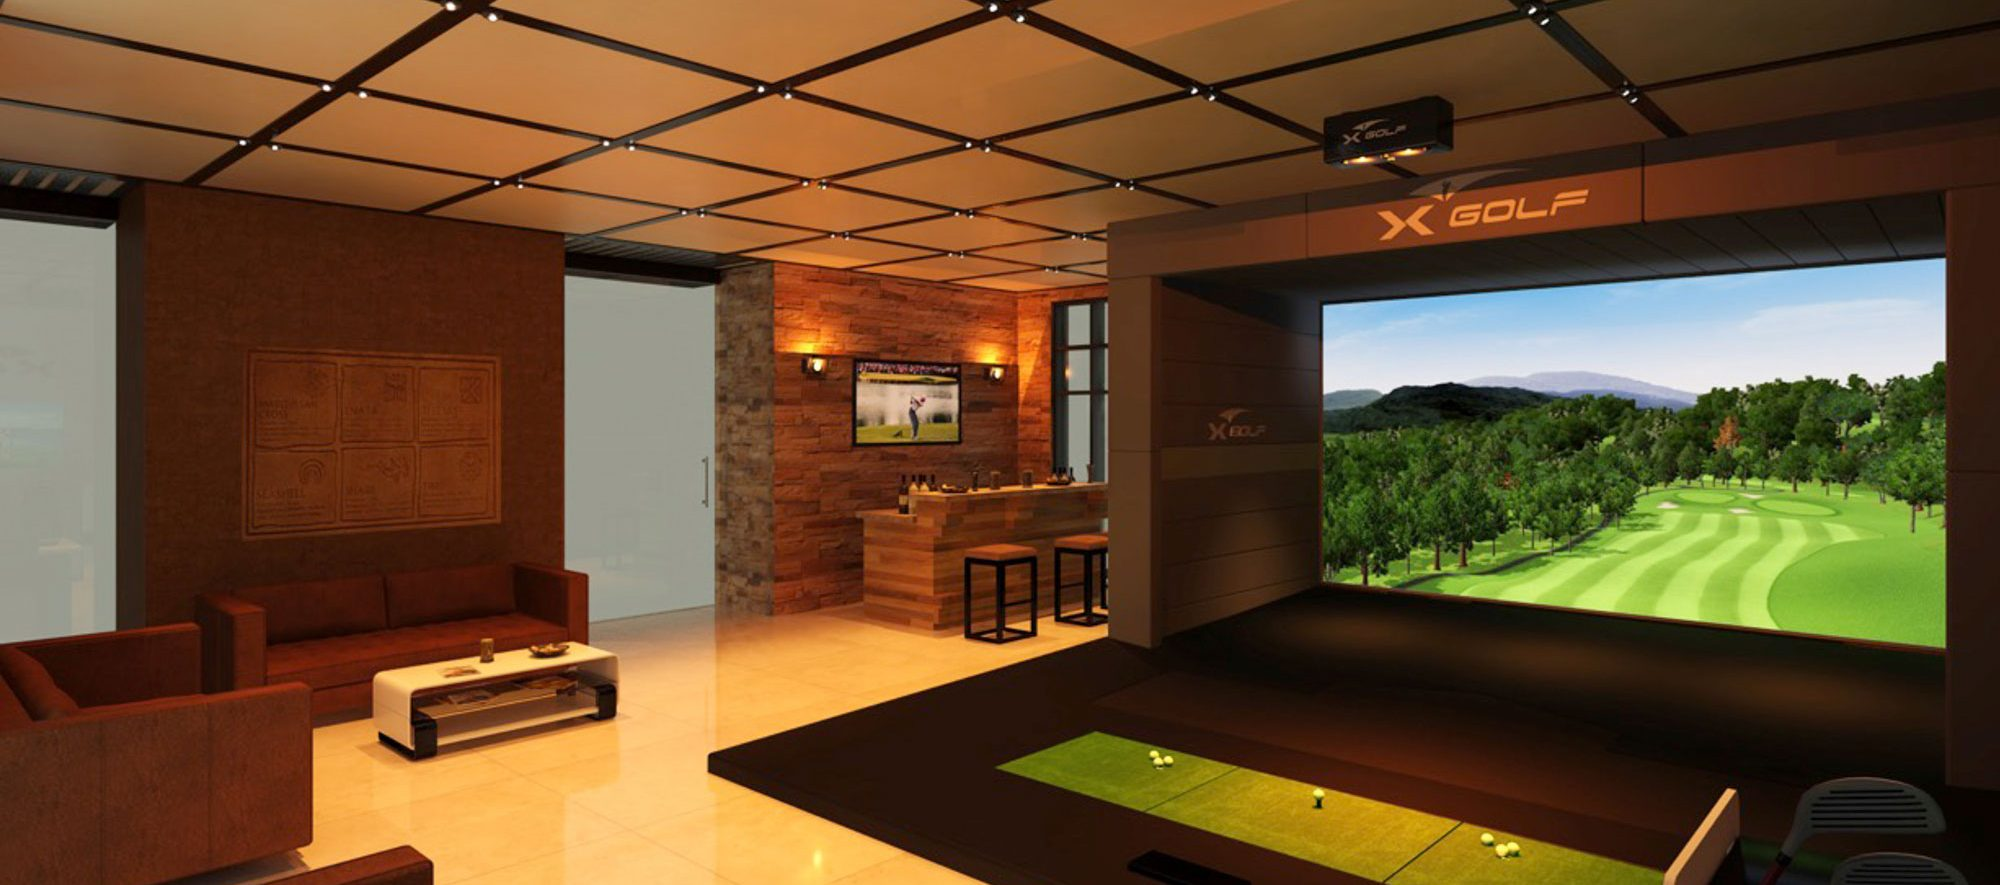 X-Golf Commercial Installation 3D Render